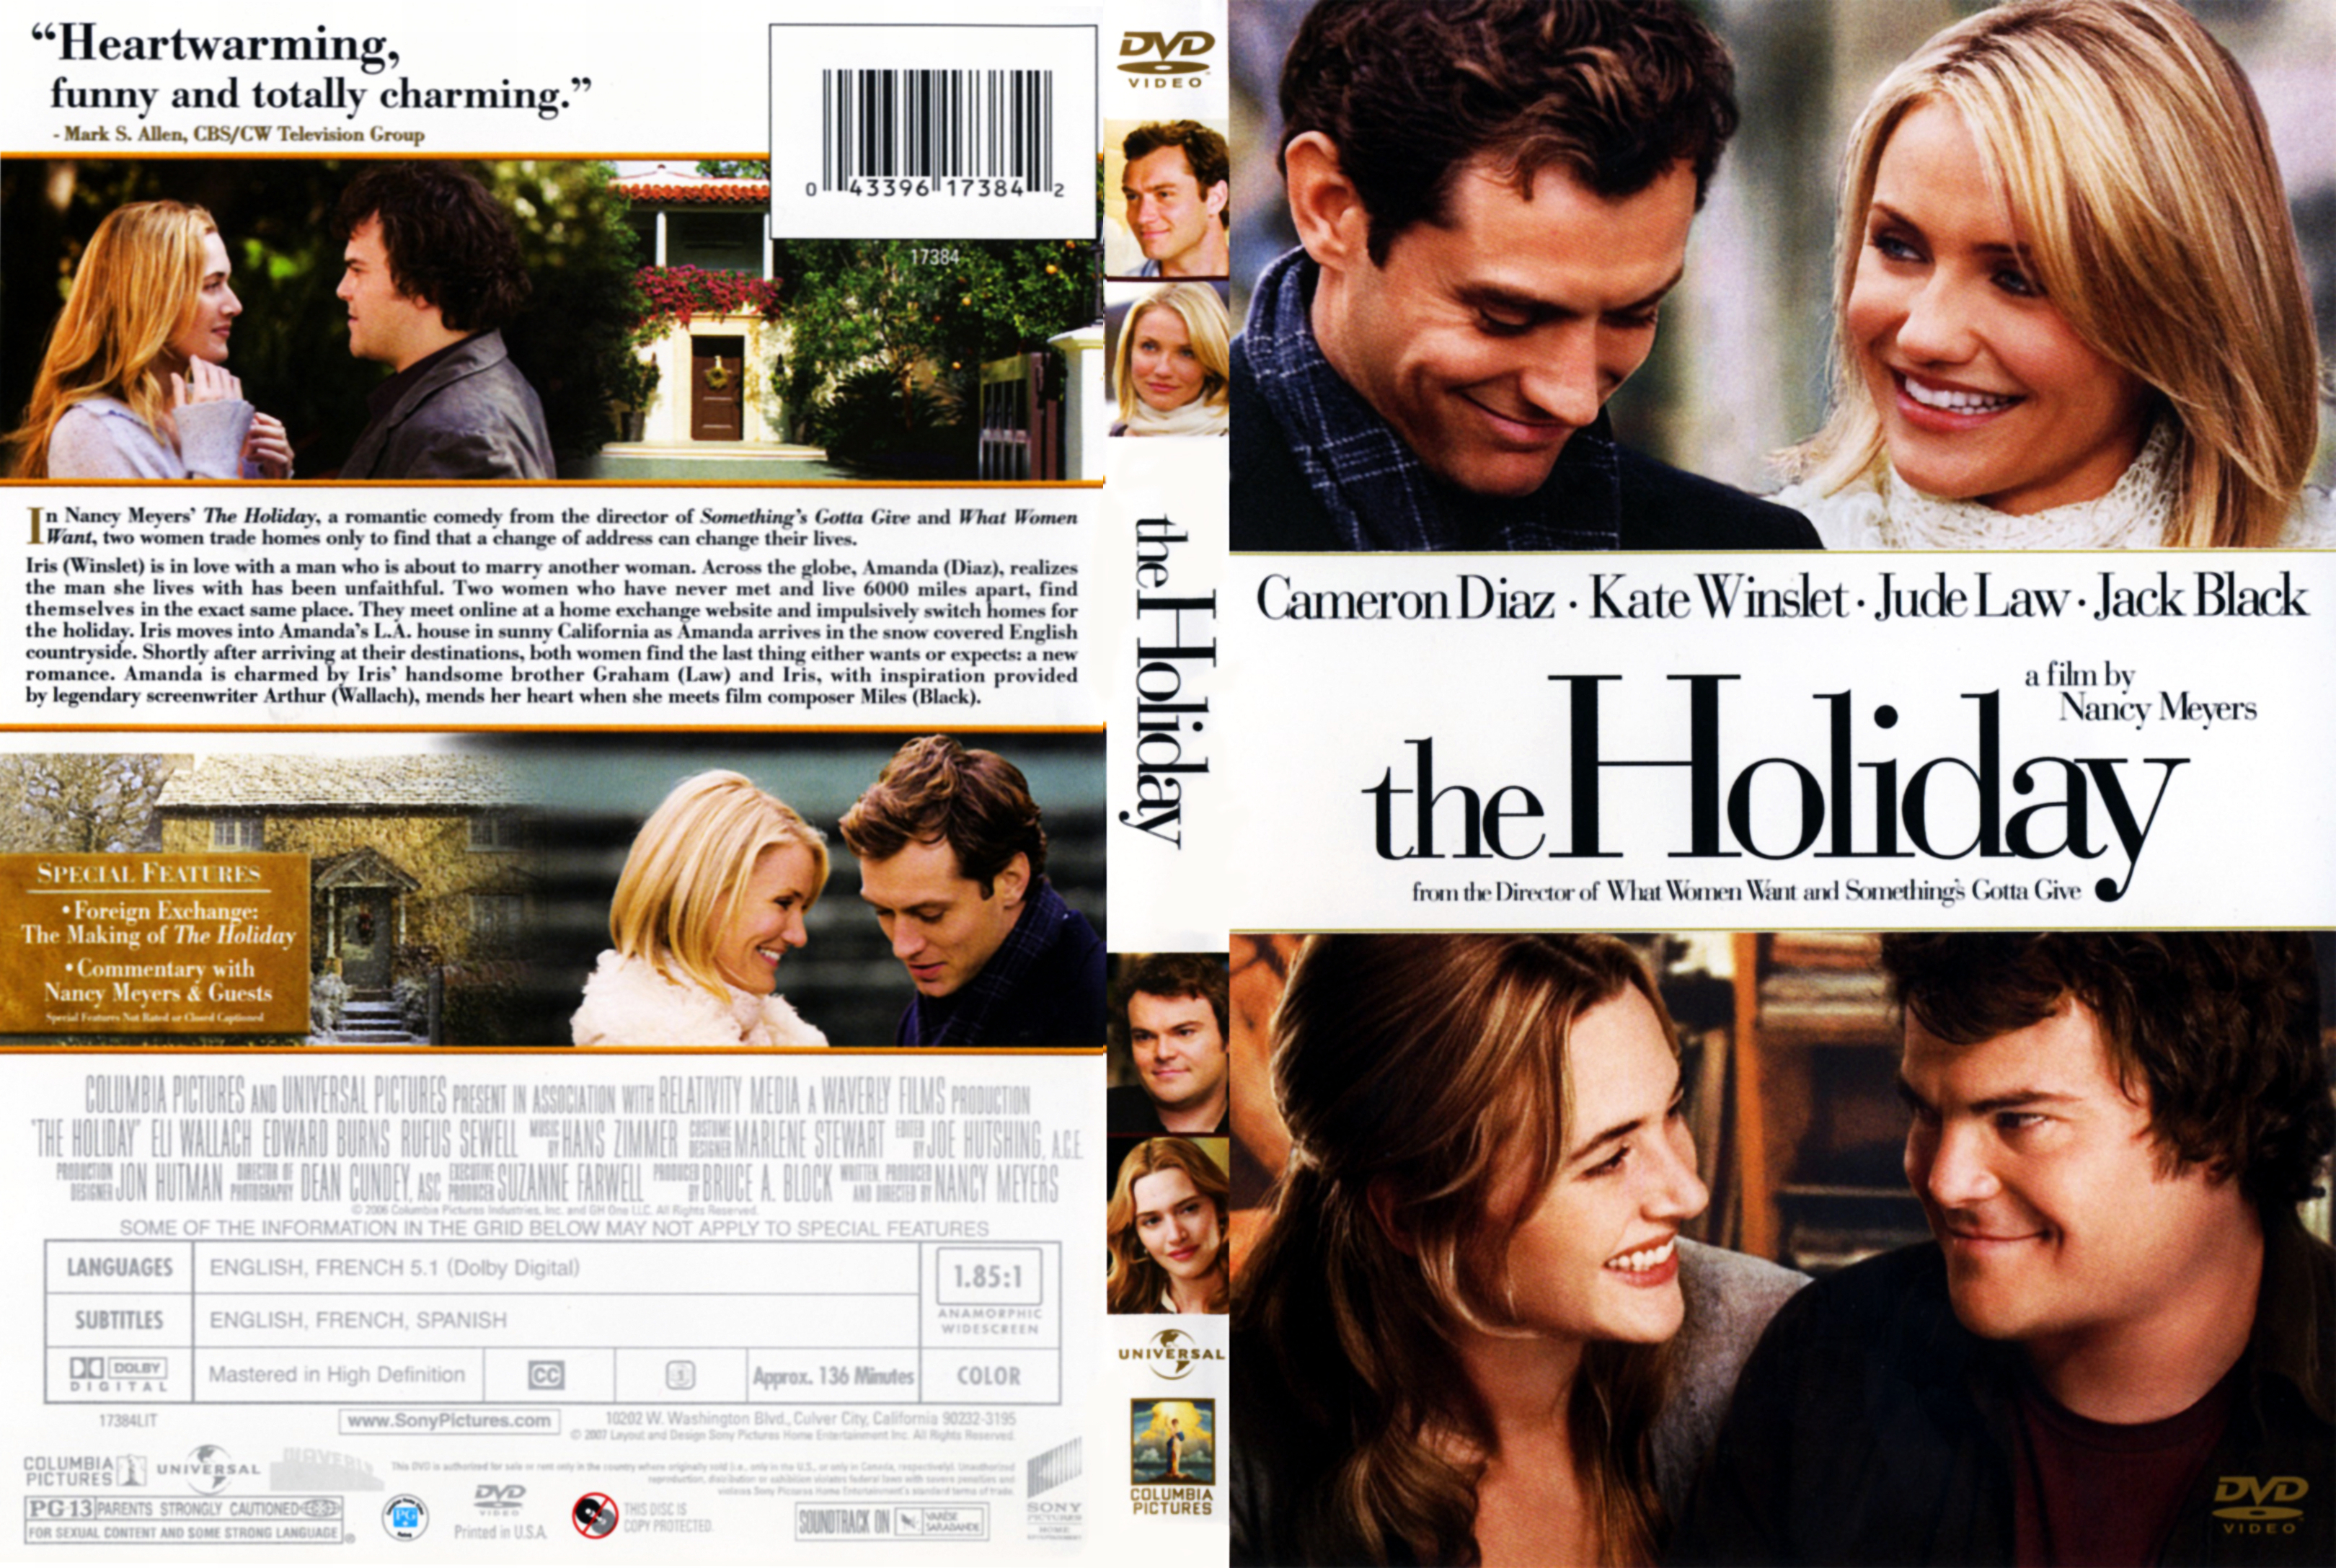 The Holiday 2006 (cover front)